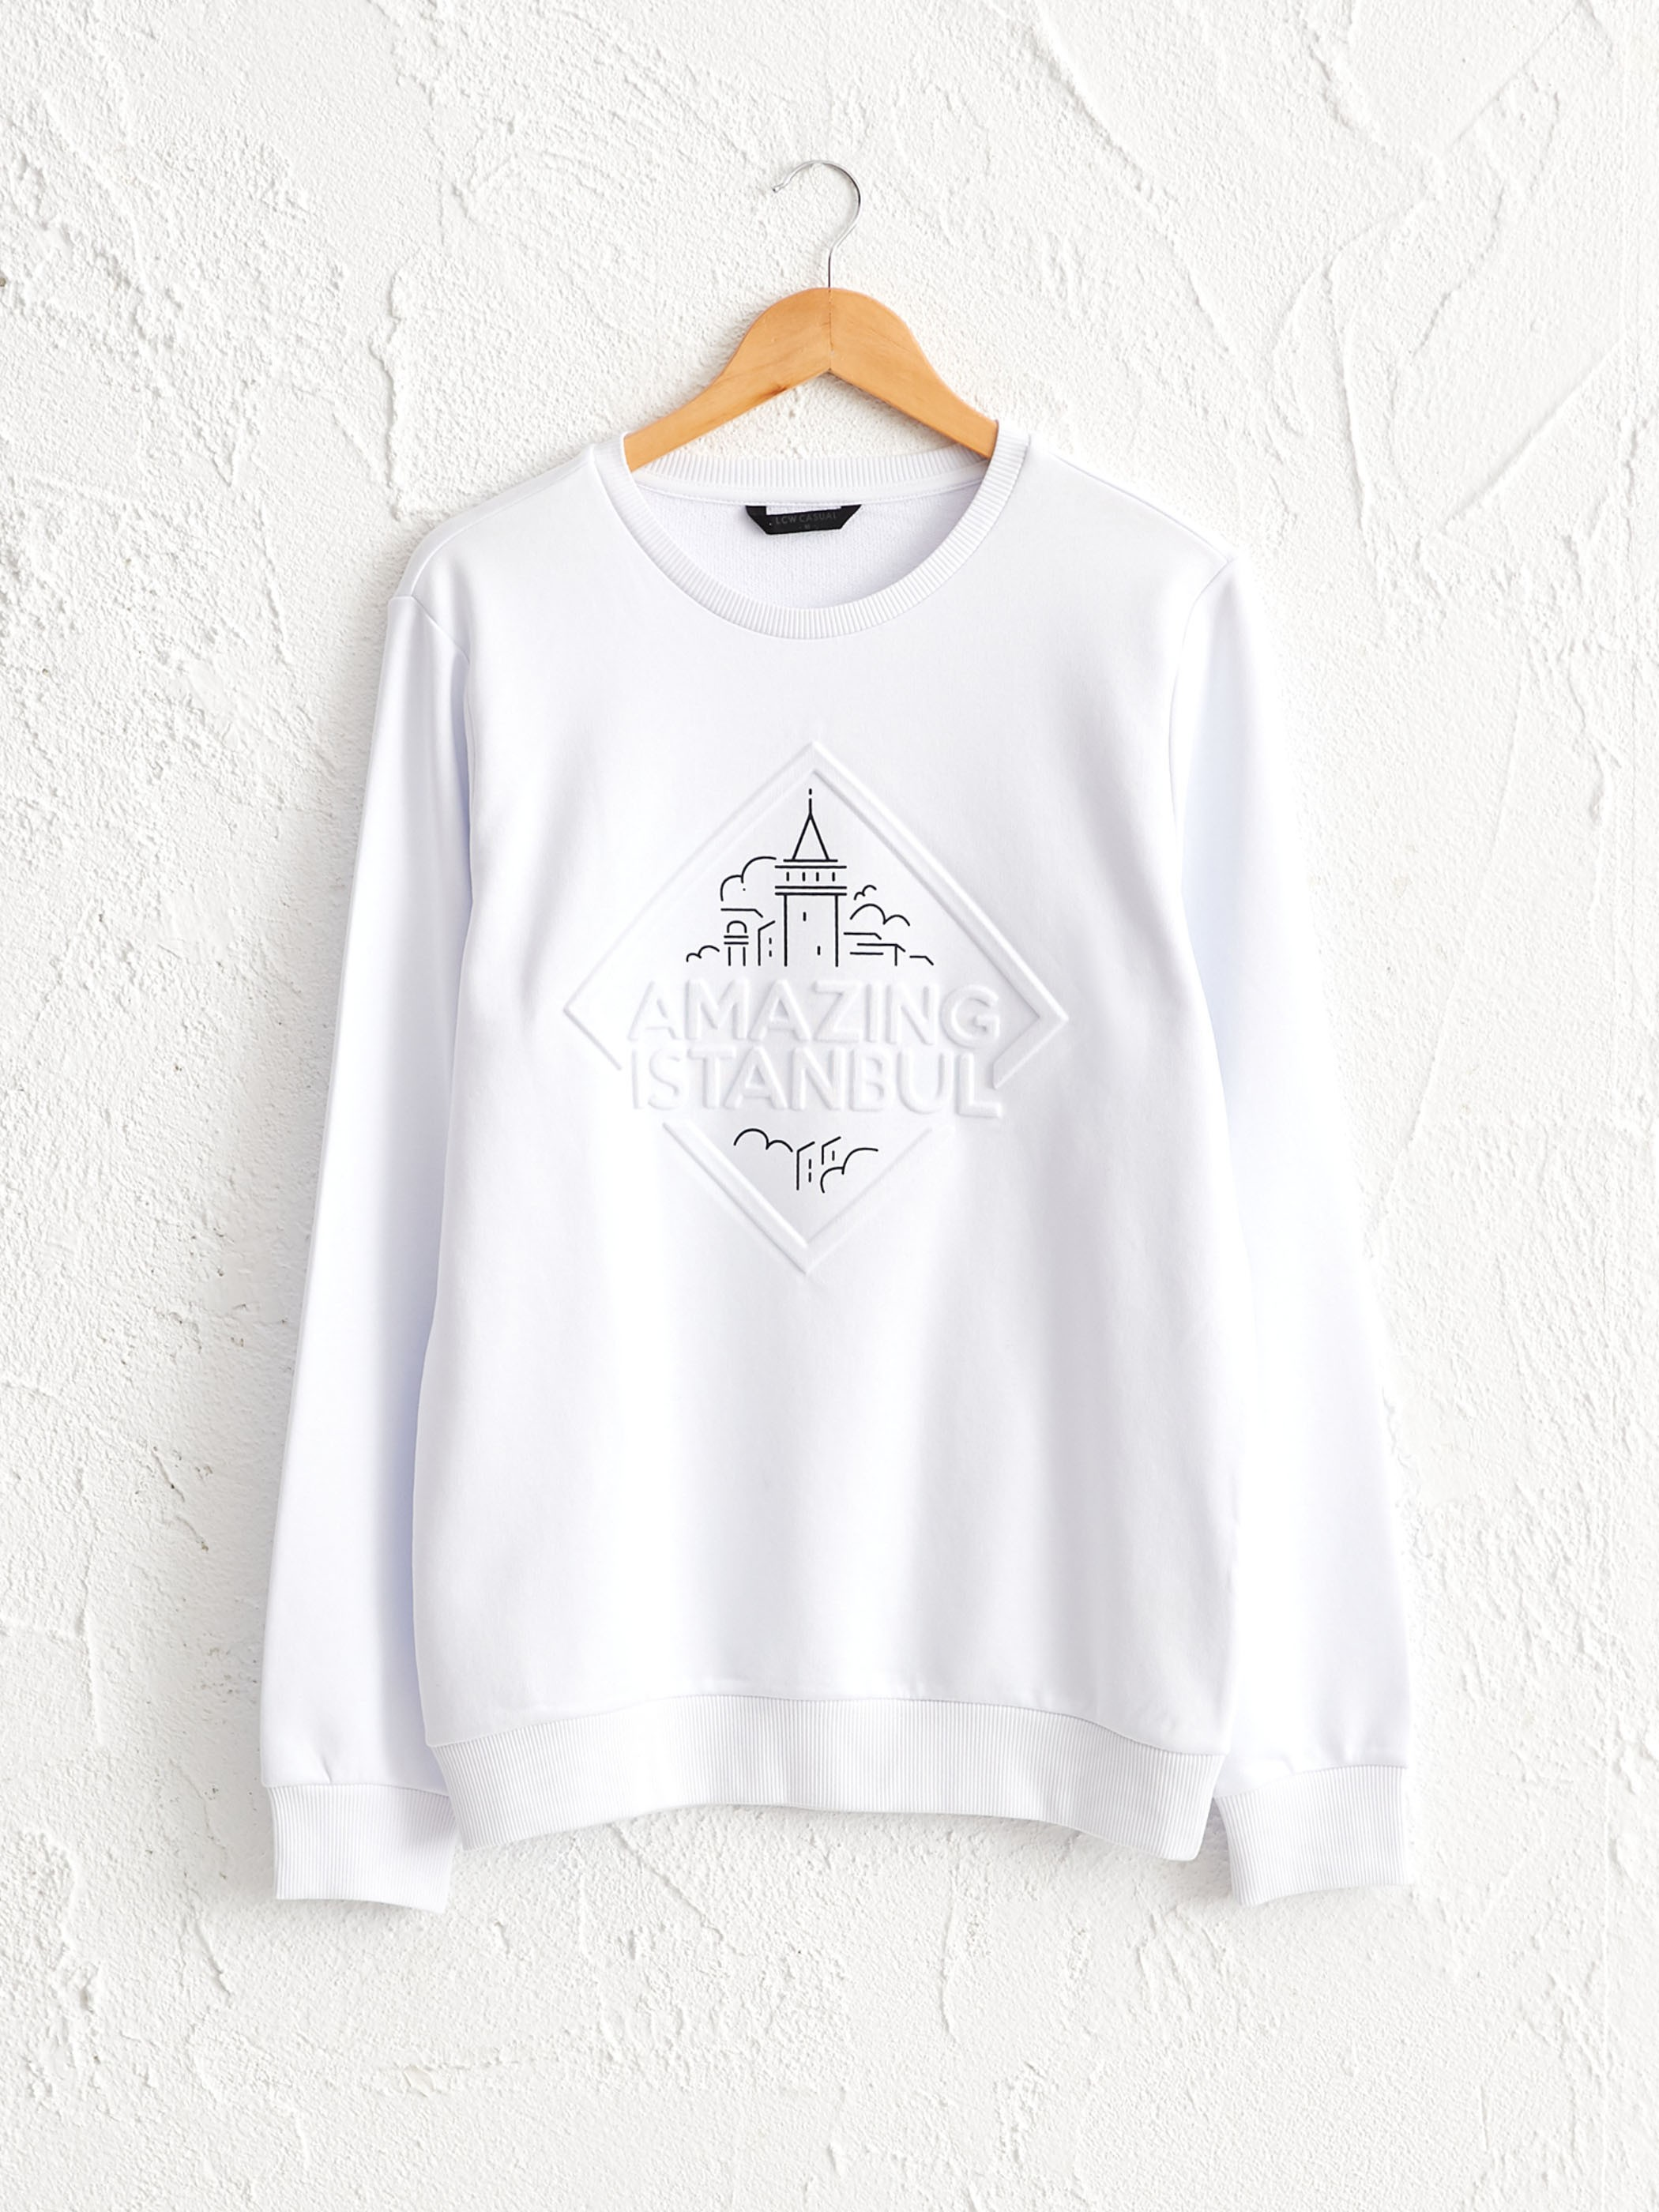 WHITE - Crew Neck Istanbul Printed Thin Sweatshirt Father and Son Matching - 0SU310Z8